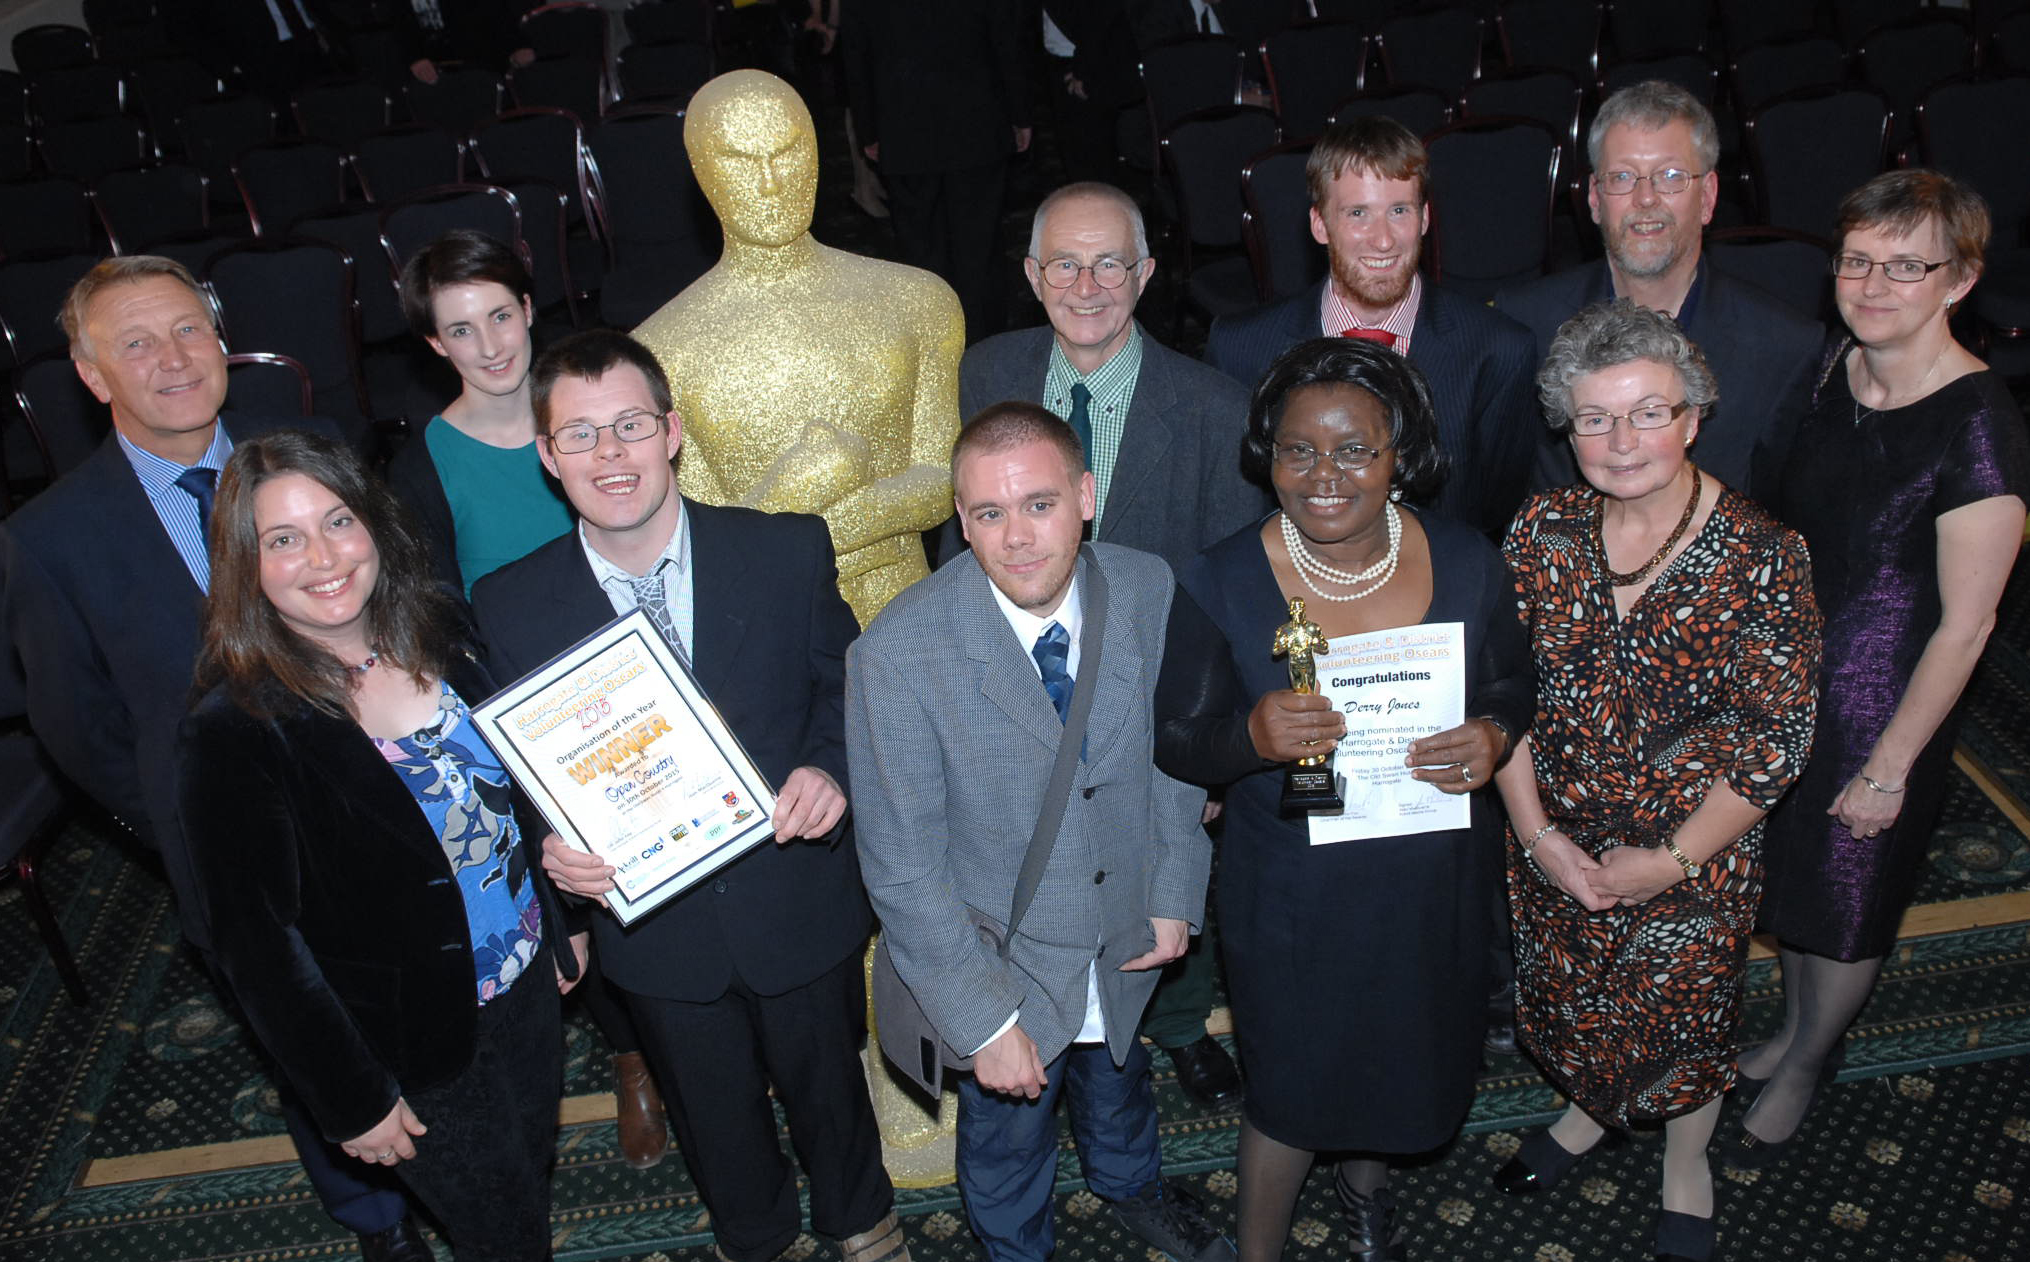 A group of people smartly dressed holding certificates and awards